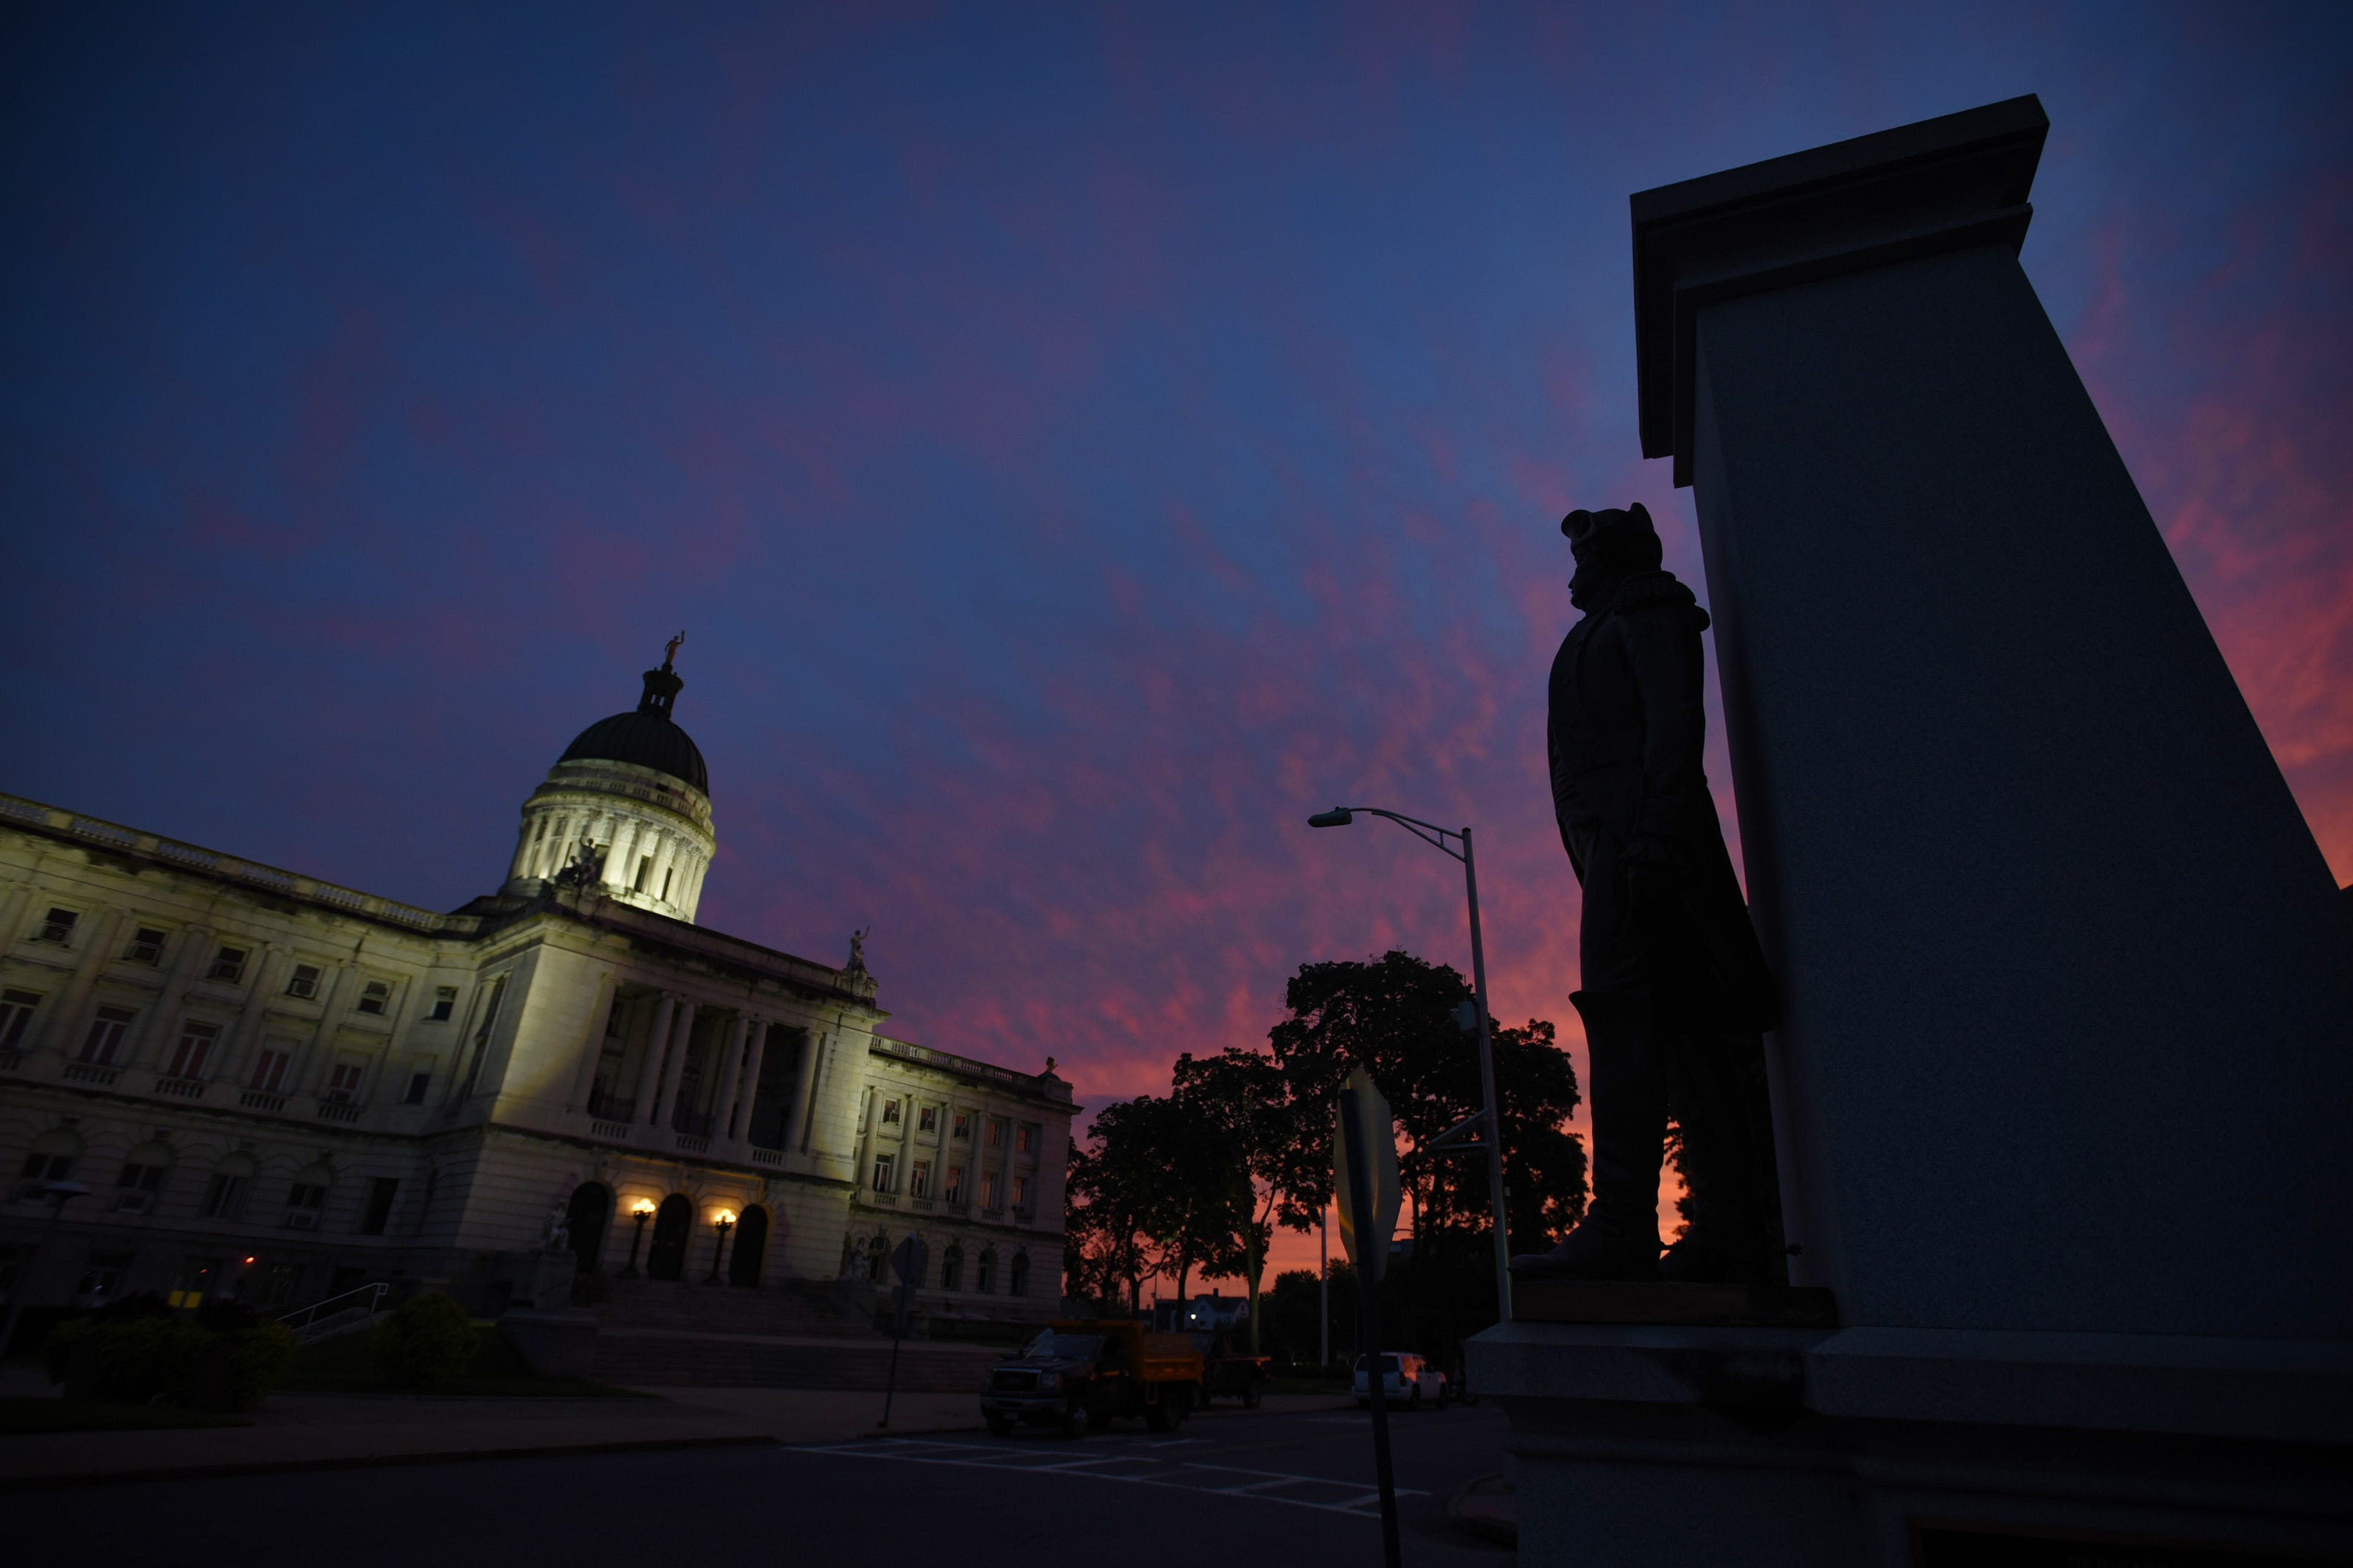 A colorful evening sky is seen above the Bergen County Courthouse and a statue of Brigadier General Enoch Poor on The Green in Hackensack on 08/03/21.